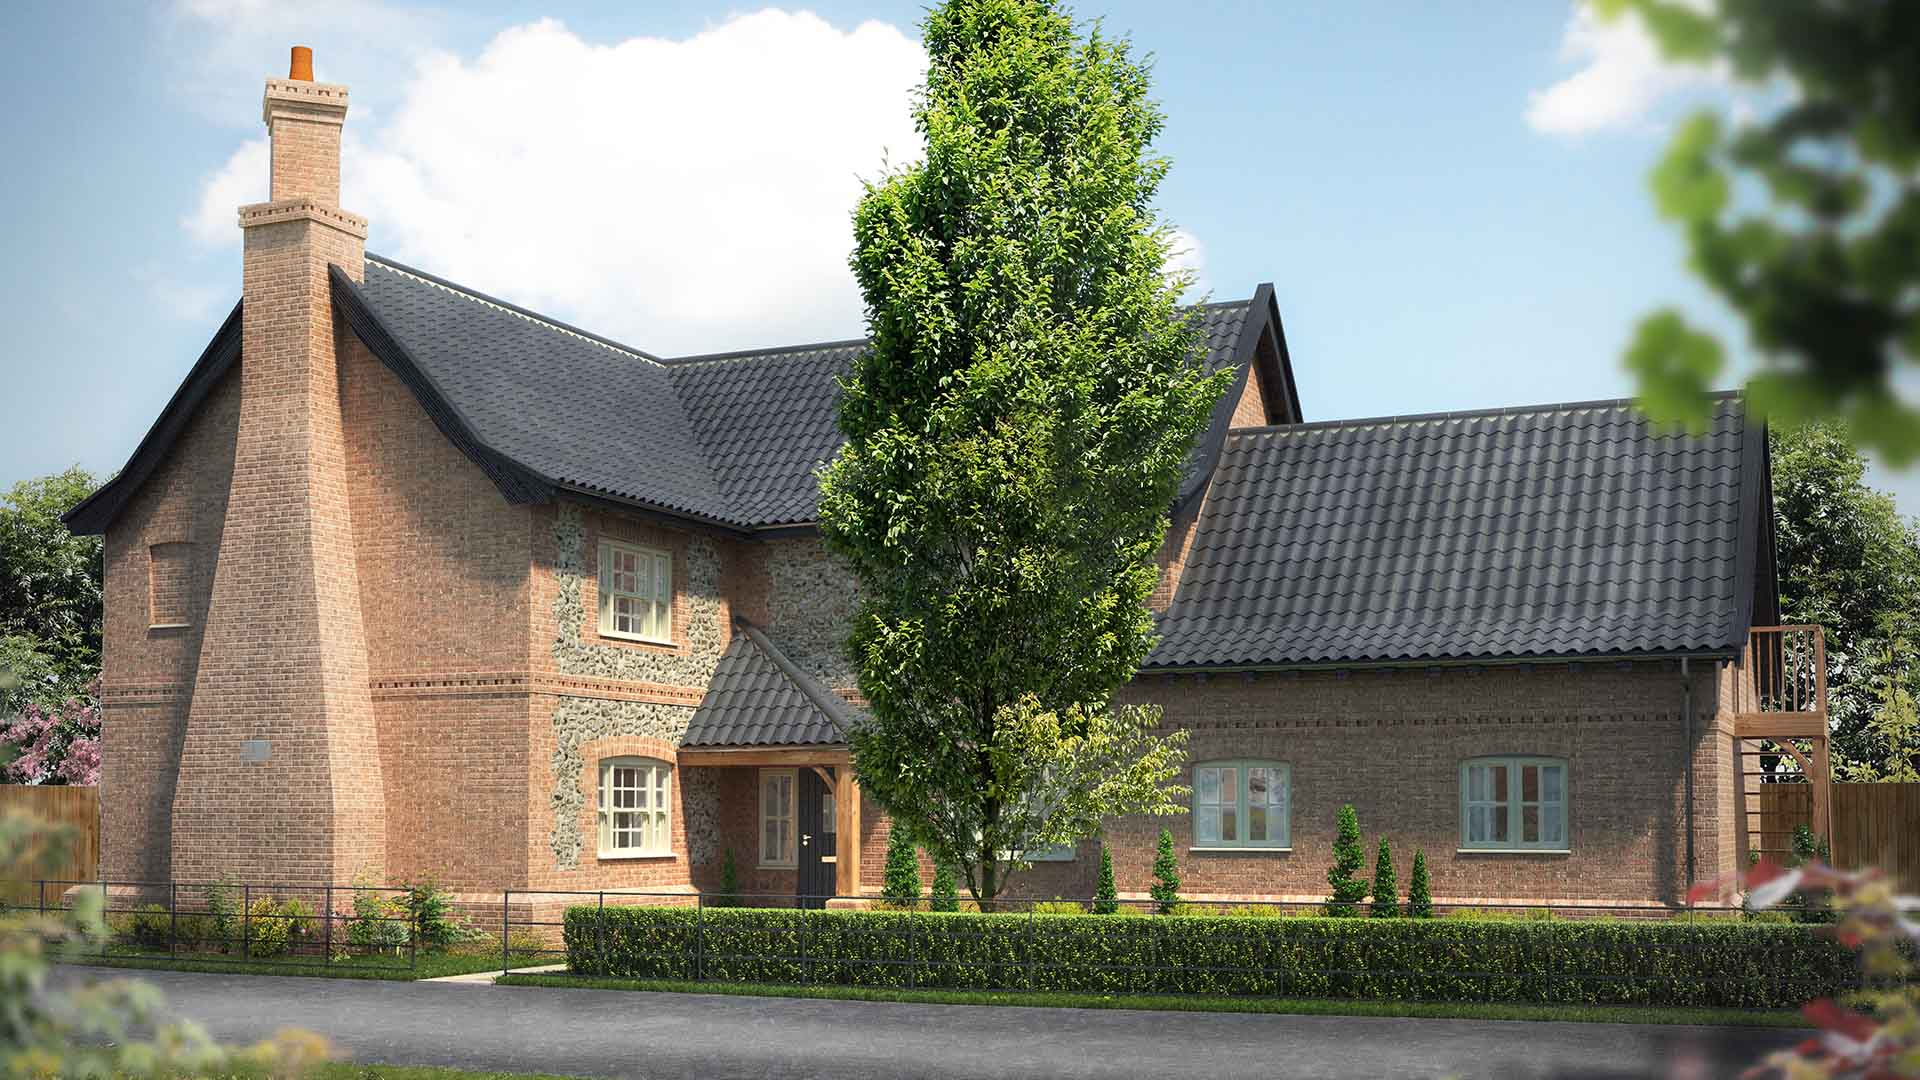 Norfolk architects for the best designs clayland architects for Architects norfolk